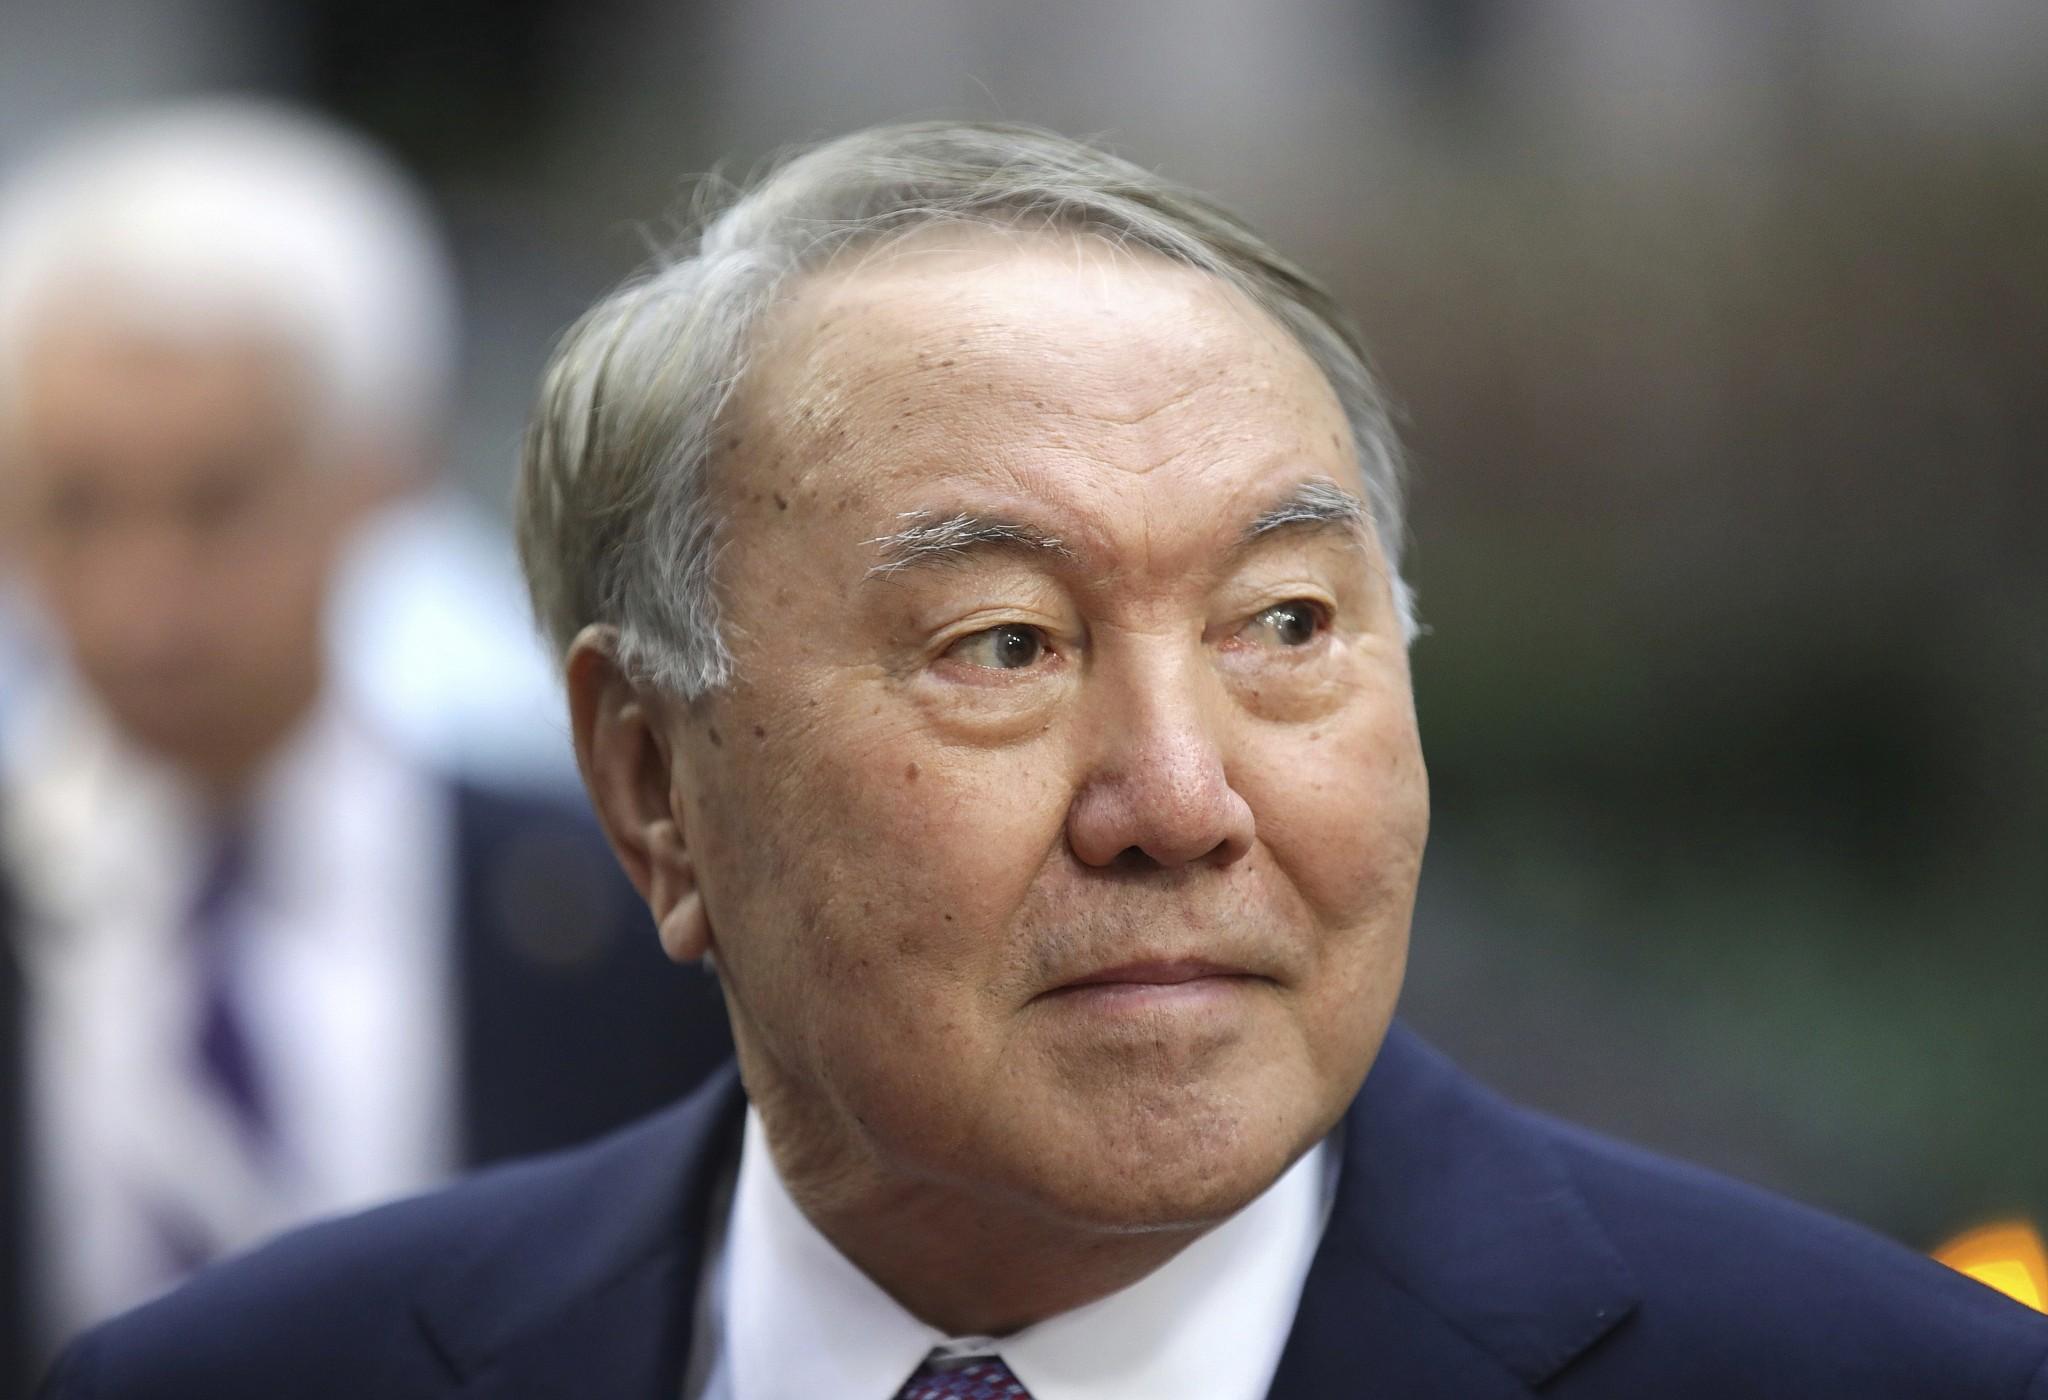 Kazakh President Nursultan Nazarbayev announces resignation